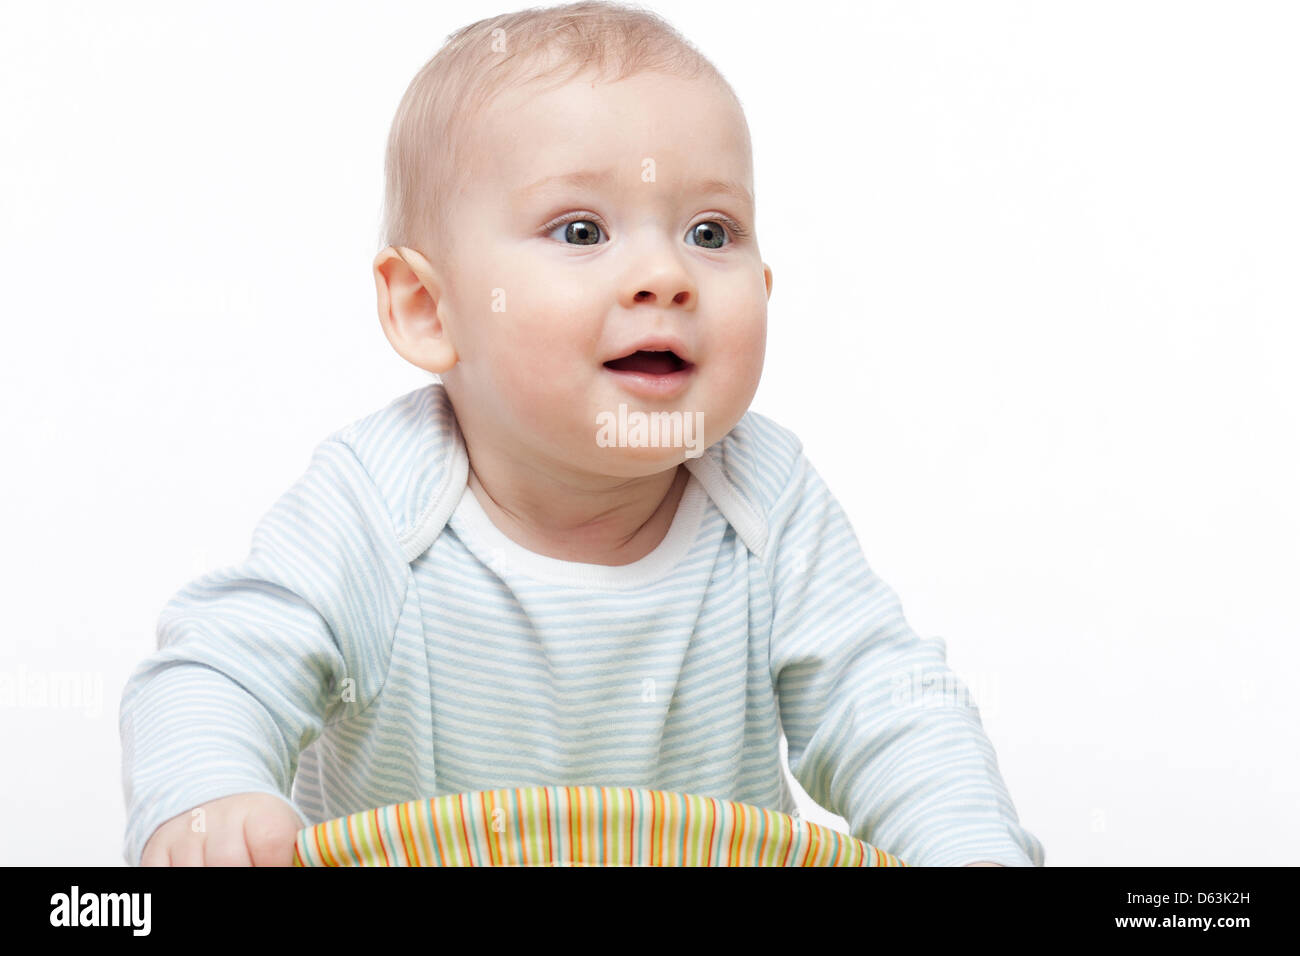 Beautiful 9 months old baby boy smiling - Stock Image